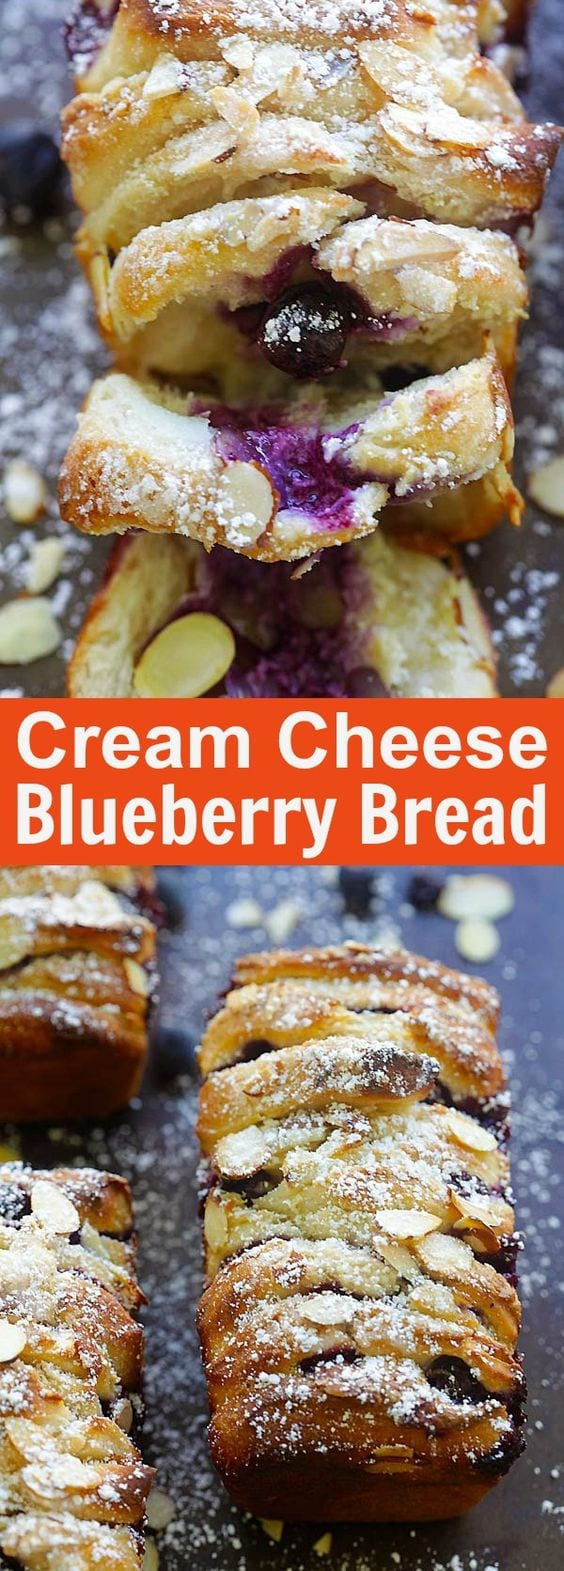 Blueberry-Cream Cheese Pull-Apart Bread – the best pull-apart bread loaded with cream cheese and blueberries. So delicious | rasamalaysia.com